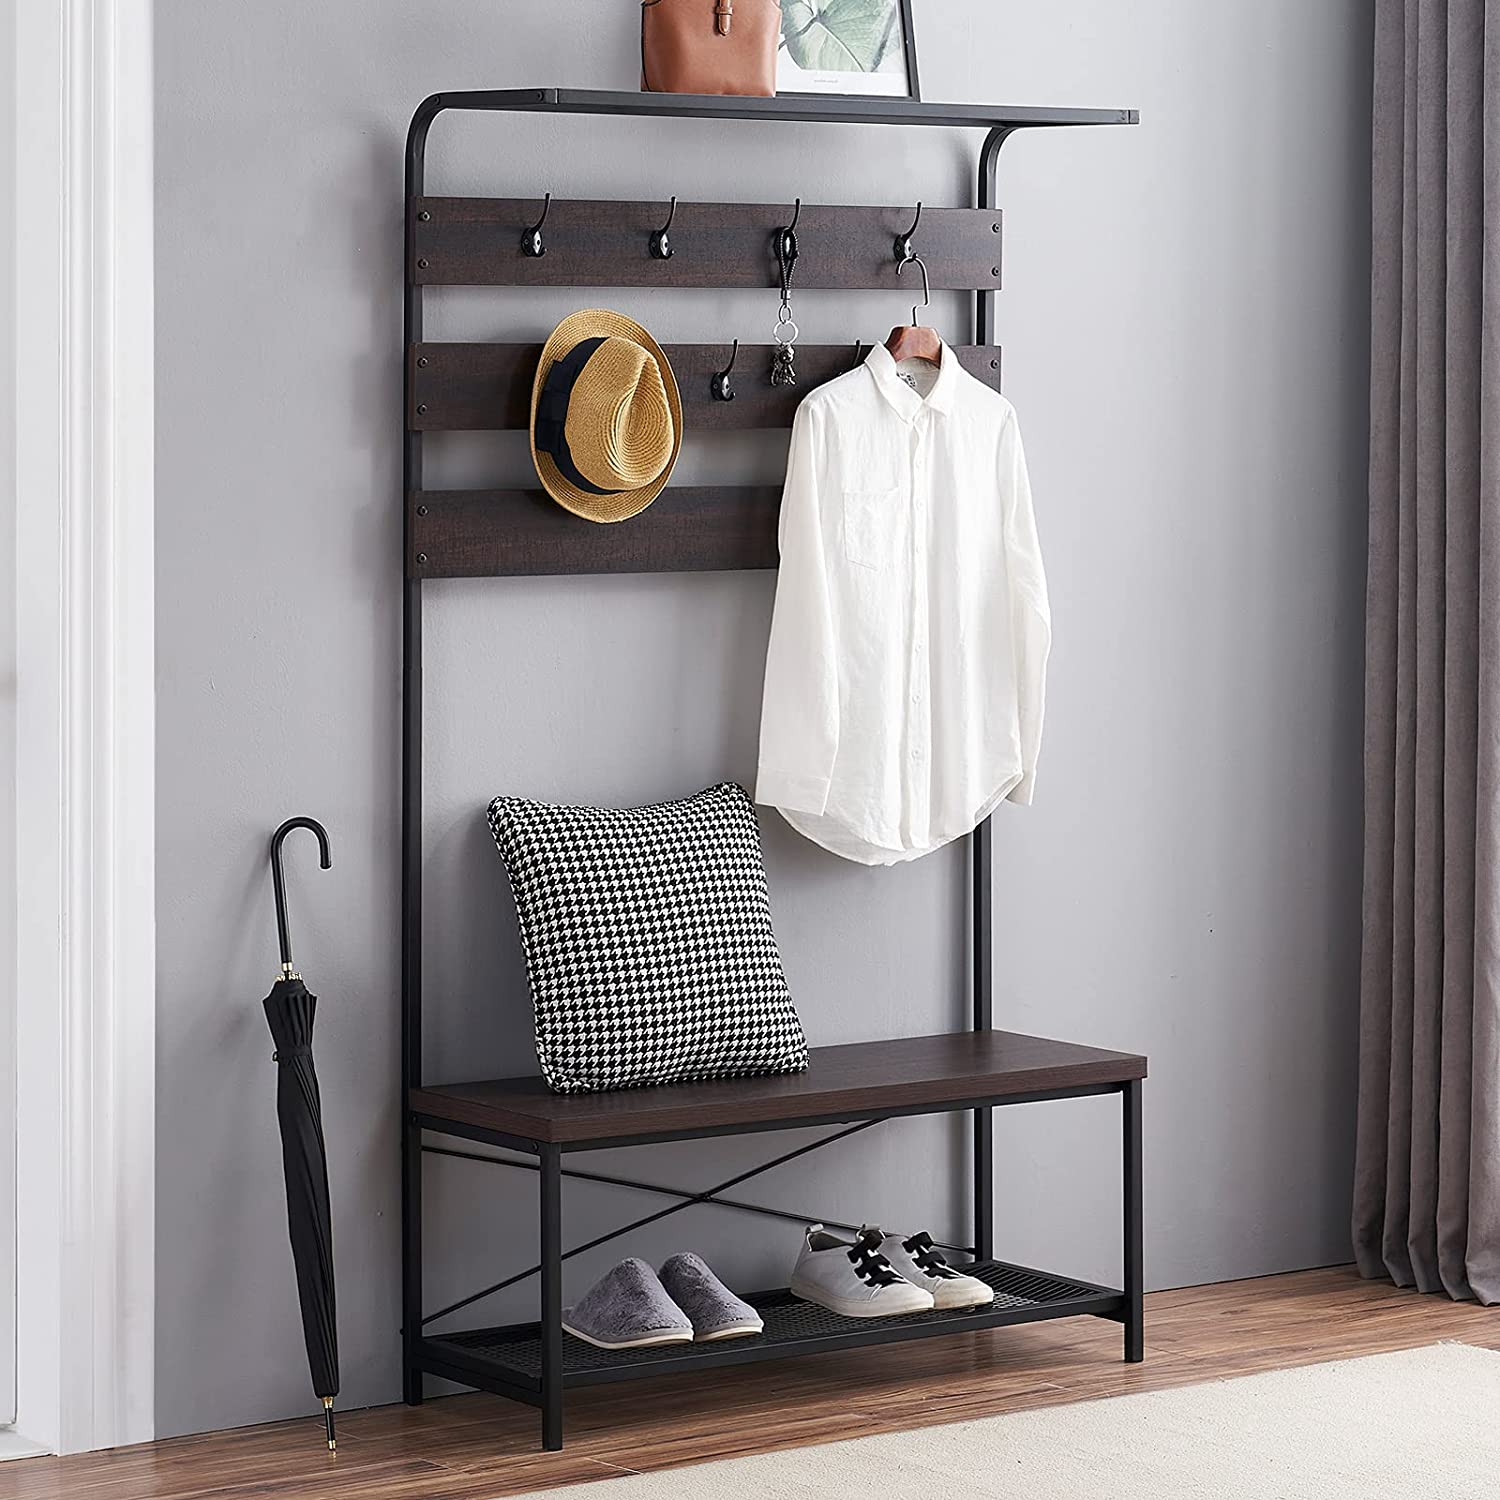 MHAOSEHU Entryway Coat Rack Bench, Modern Hall Tree with Storage Bench, Wood and Metal Hallway Bench with Coat Rack, Espresso 3-in-1 Design: Home Improvement